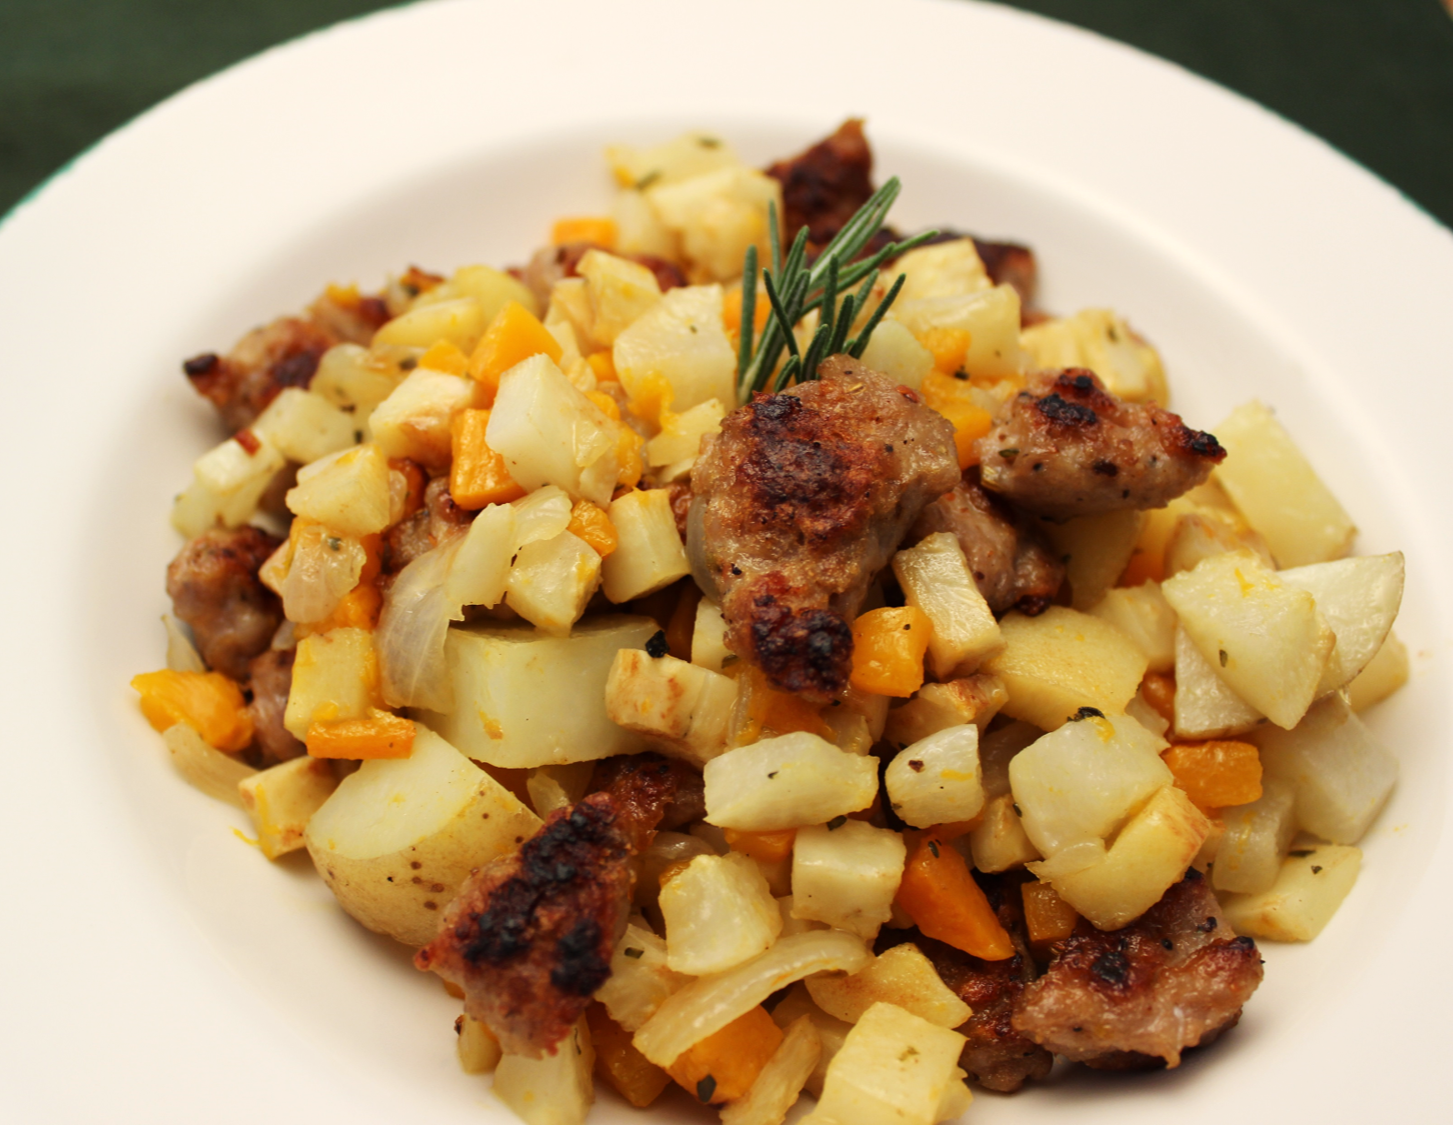 Sausage and Root Vegetable Skillet